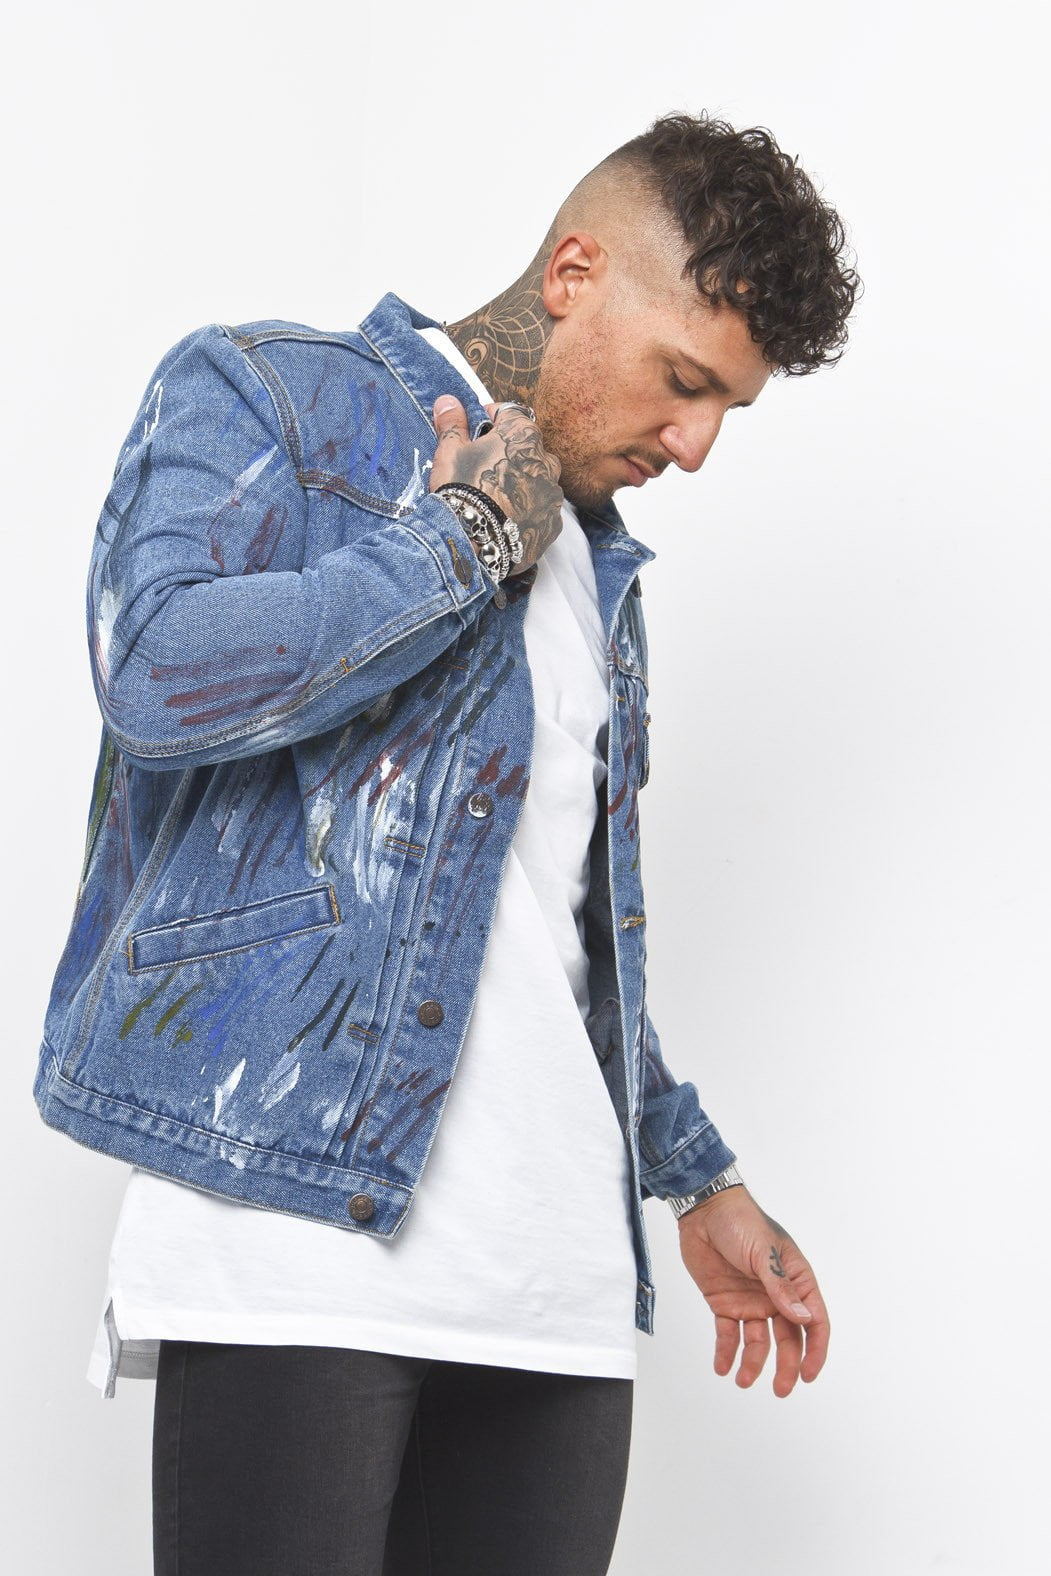 Norton Slim Fit Denim Jacket Paint Splatter - Liquor N Poker  Liquor N Poker